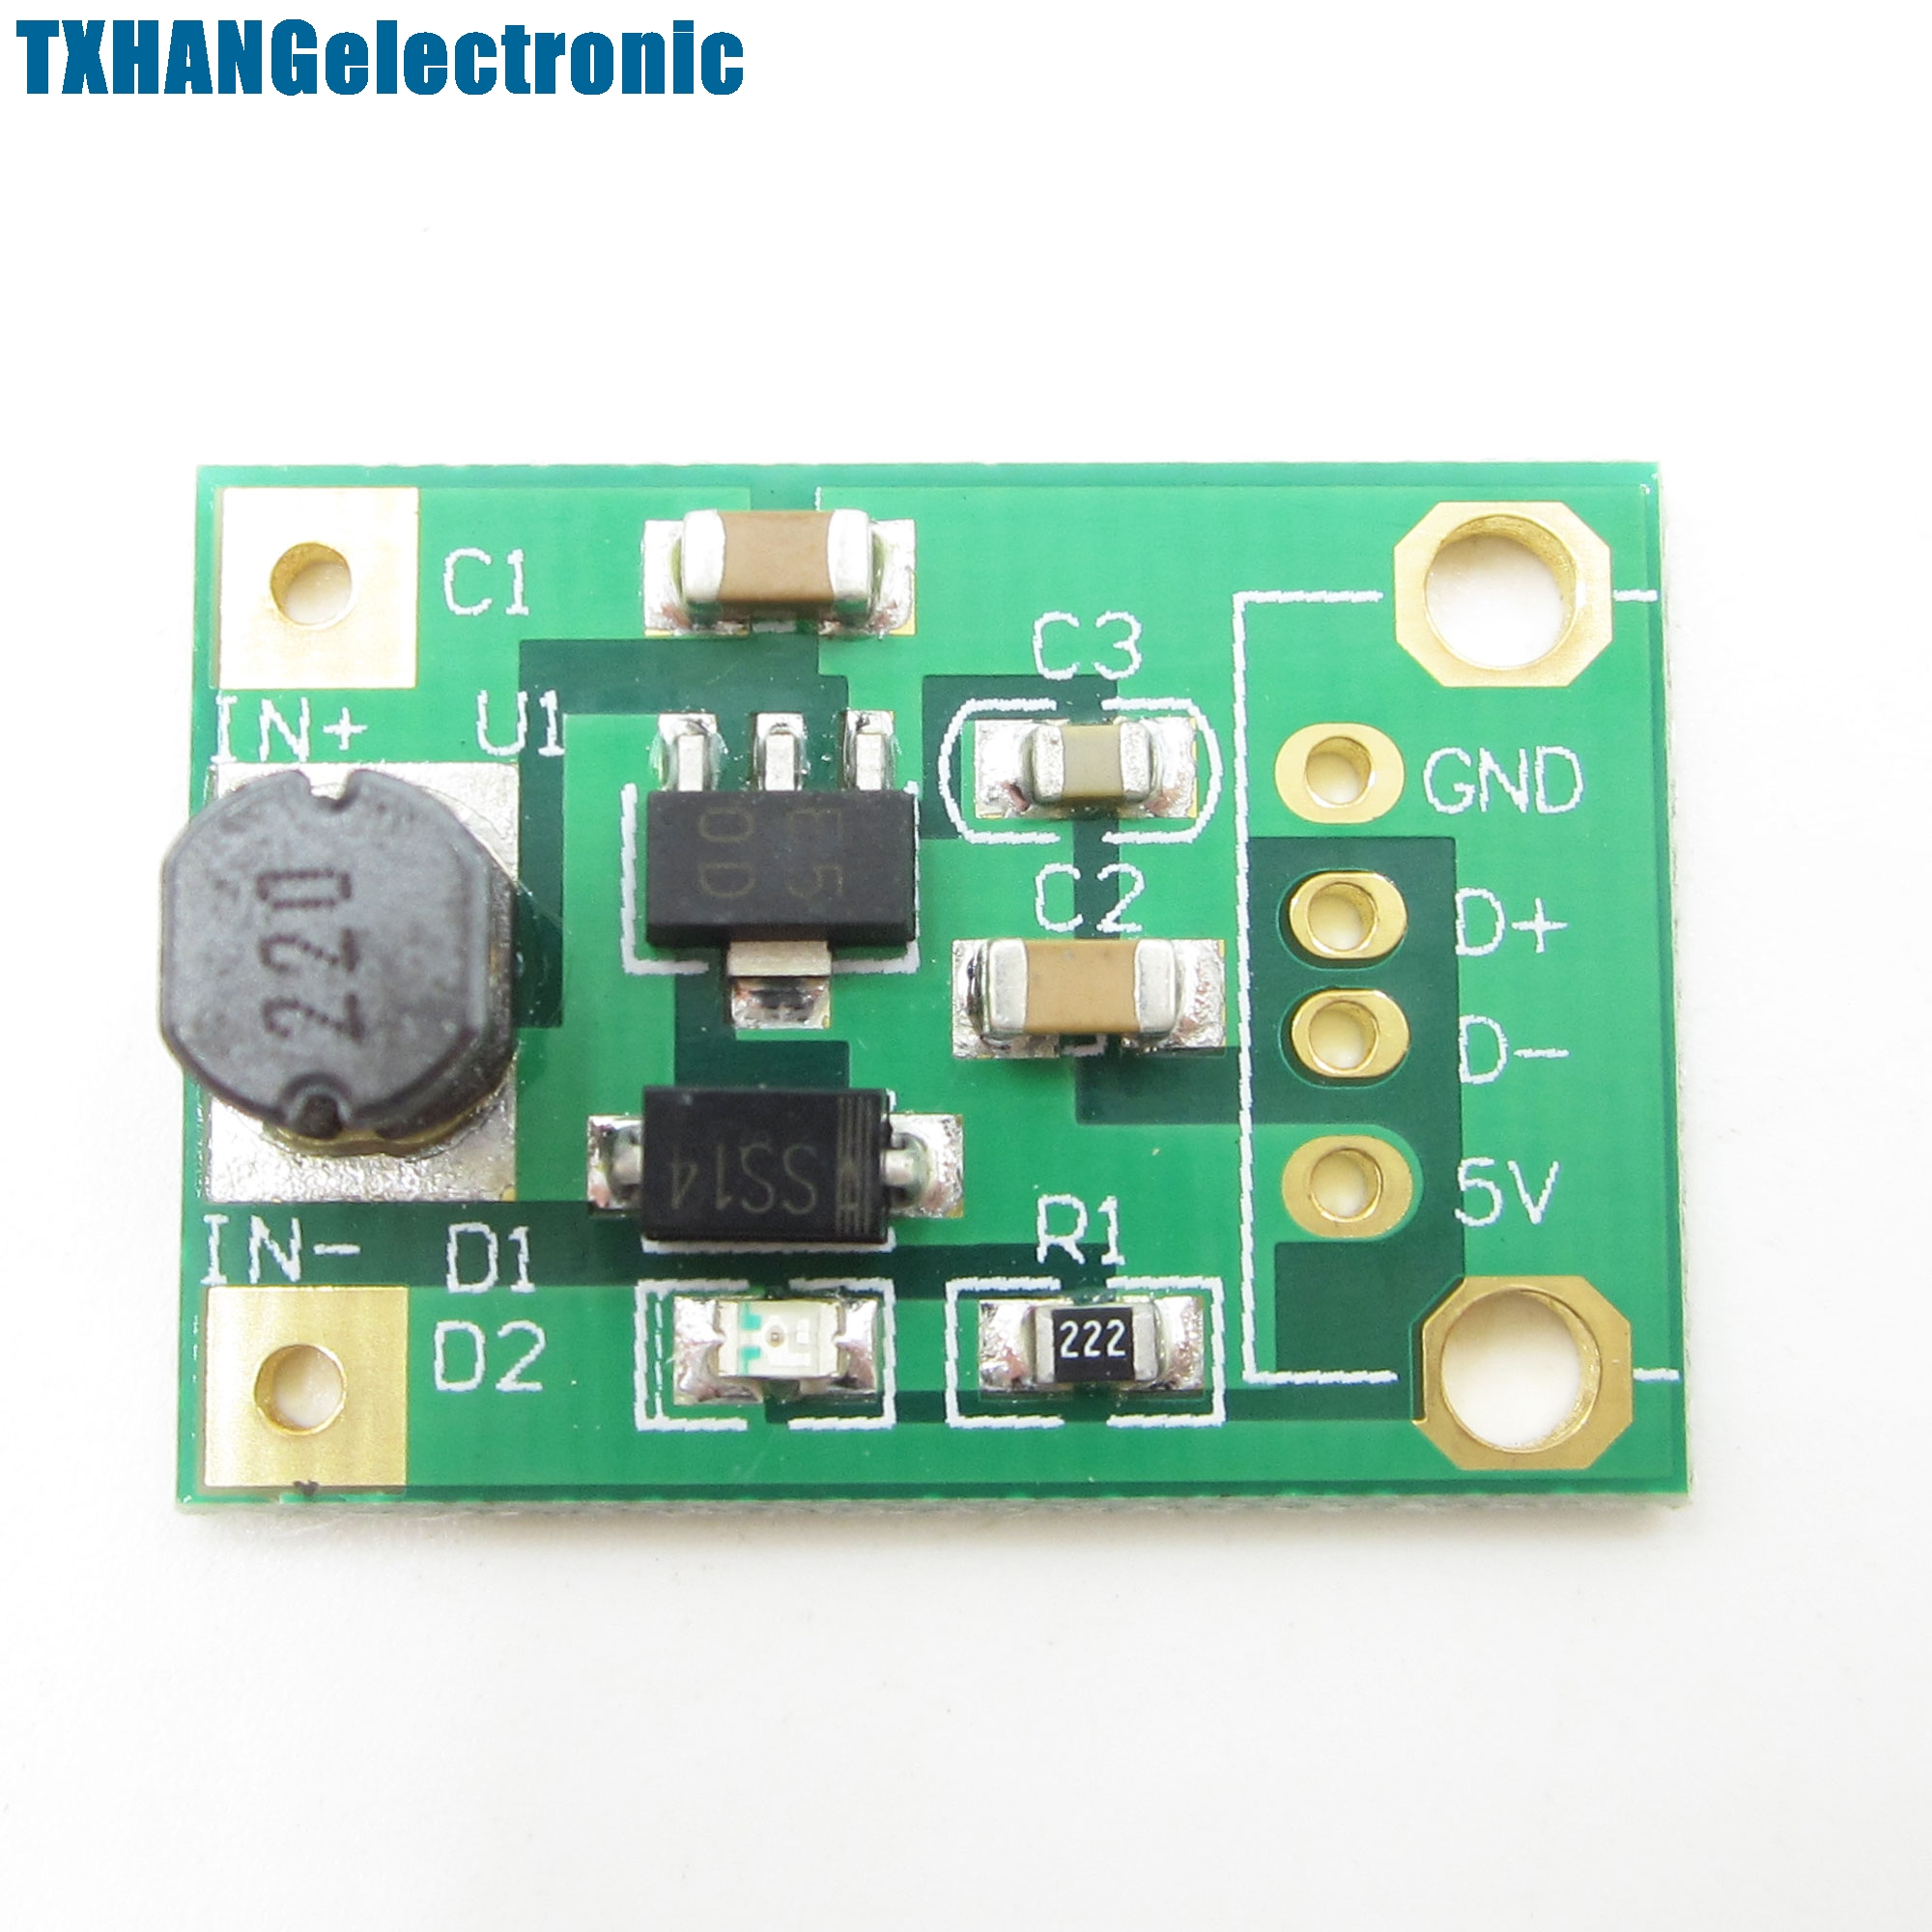 5PCS DC-DC Boost Converter Step Up Module 1-5V to 5V 500mA Power Module voltage converter ...